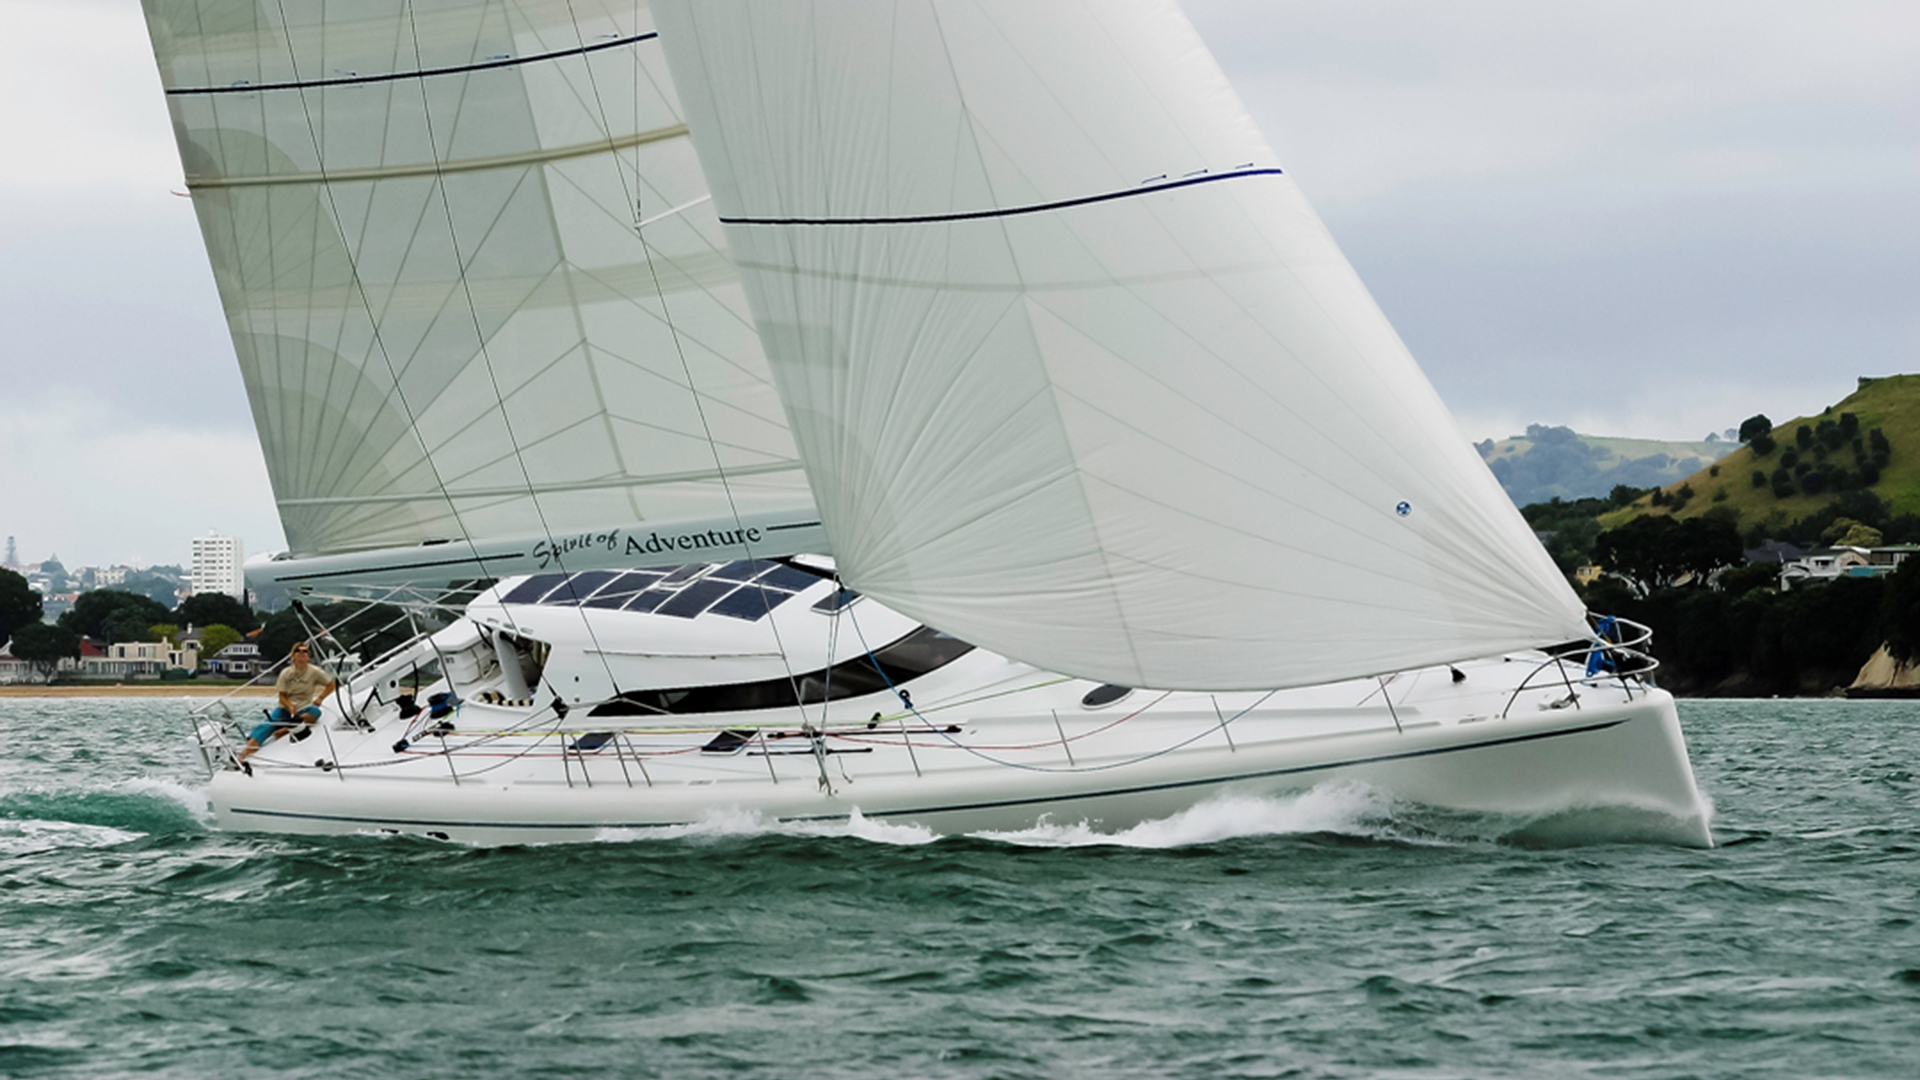 Spirit of Adventure is a lifting keel custom high performance ocean cruising yacht, with the interior and detailing of a mini superyacht. Both exterior lines and the yacht interior design are by lead designer Allen Clarke. SOA is the definition pf style and elegance in a modern cruising sailboat for the 21st century. A luxury custom cruising design for fast ocean cruising.